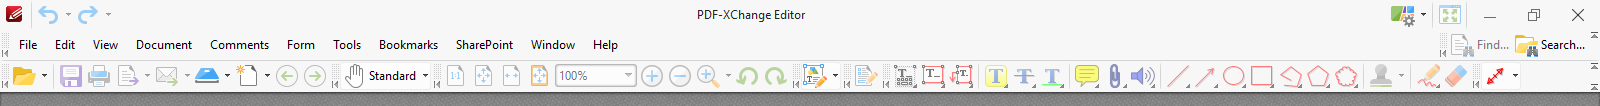 3 - Editor V7 - Classic toolbar with small icons.png